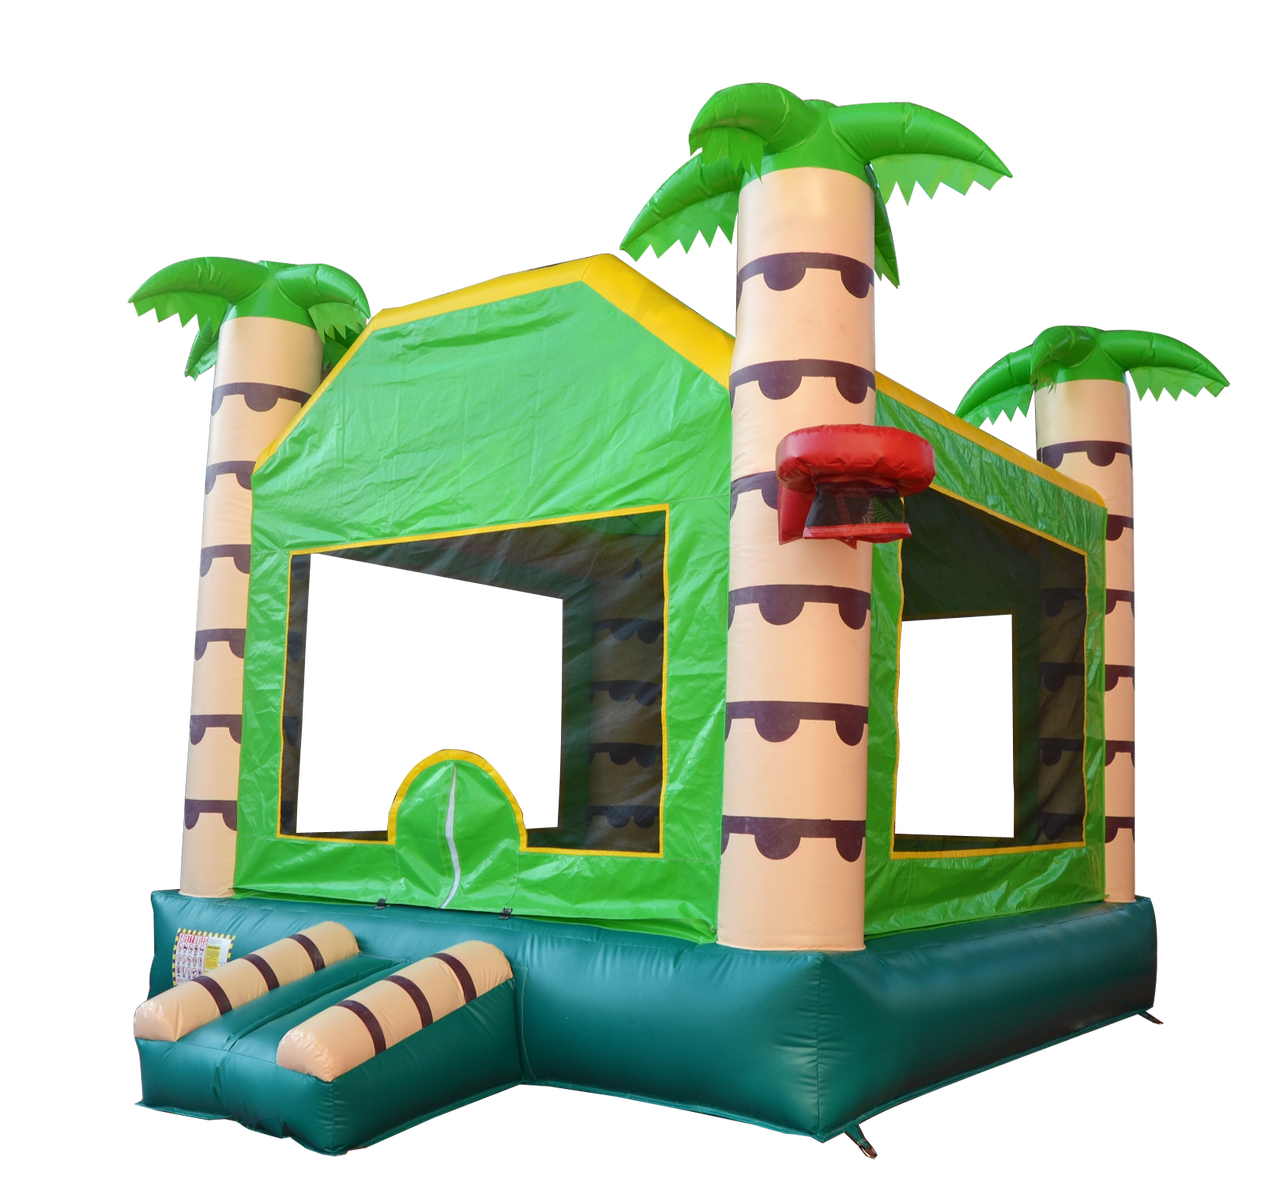 630 And Bouncers Discount Inflatable Bounce Course PNG Image